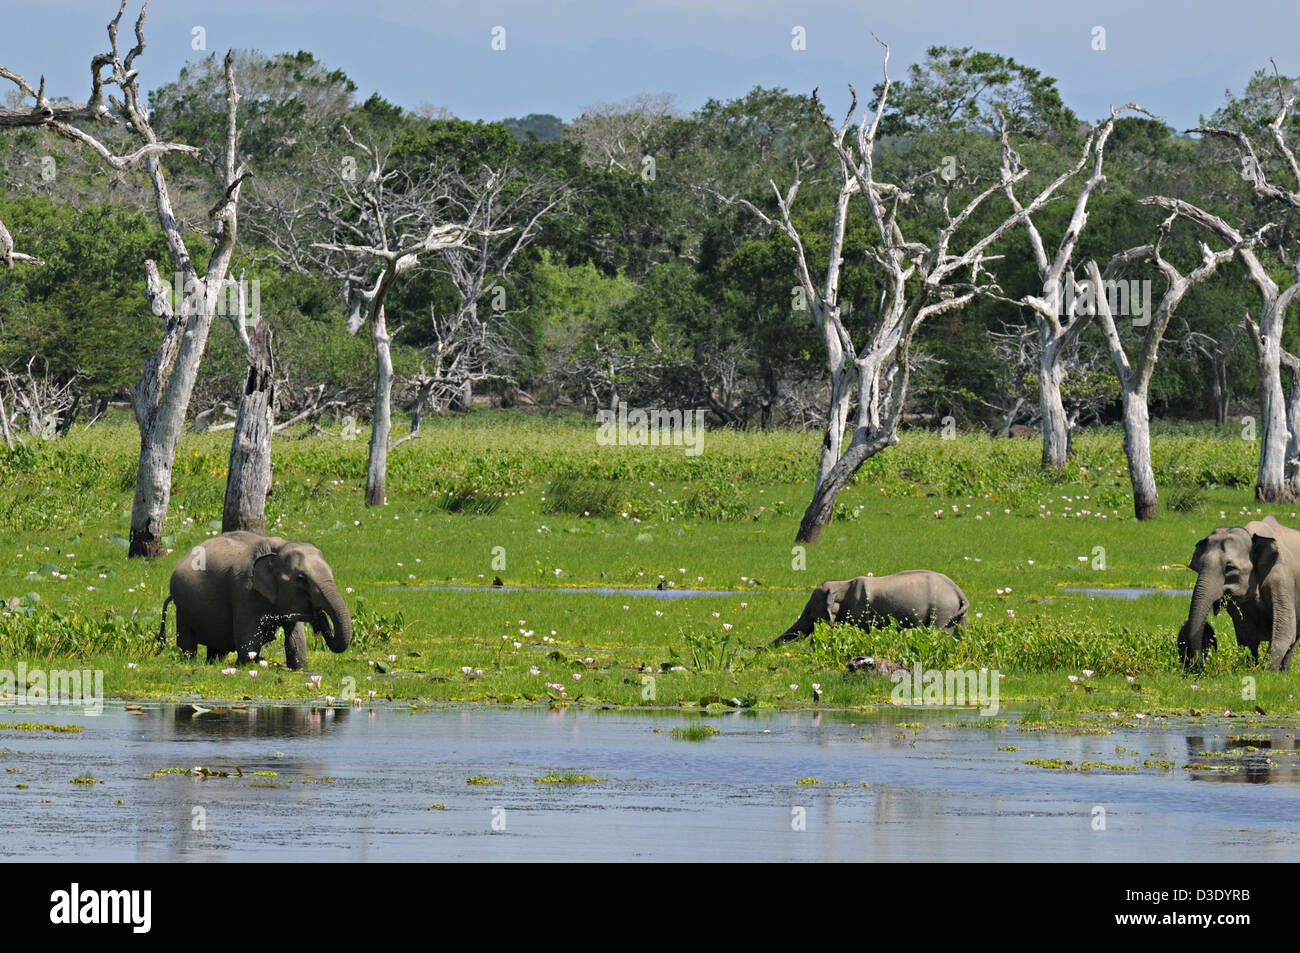 Elephant family with a young baby in a lake in Yala or Ruhuna National Park in Sri Lanka - Stock Image